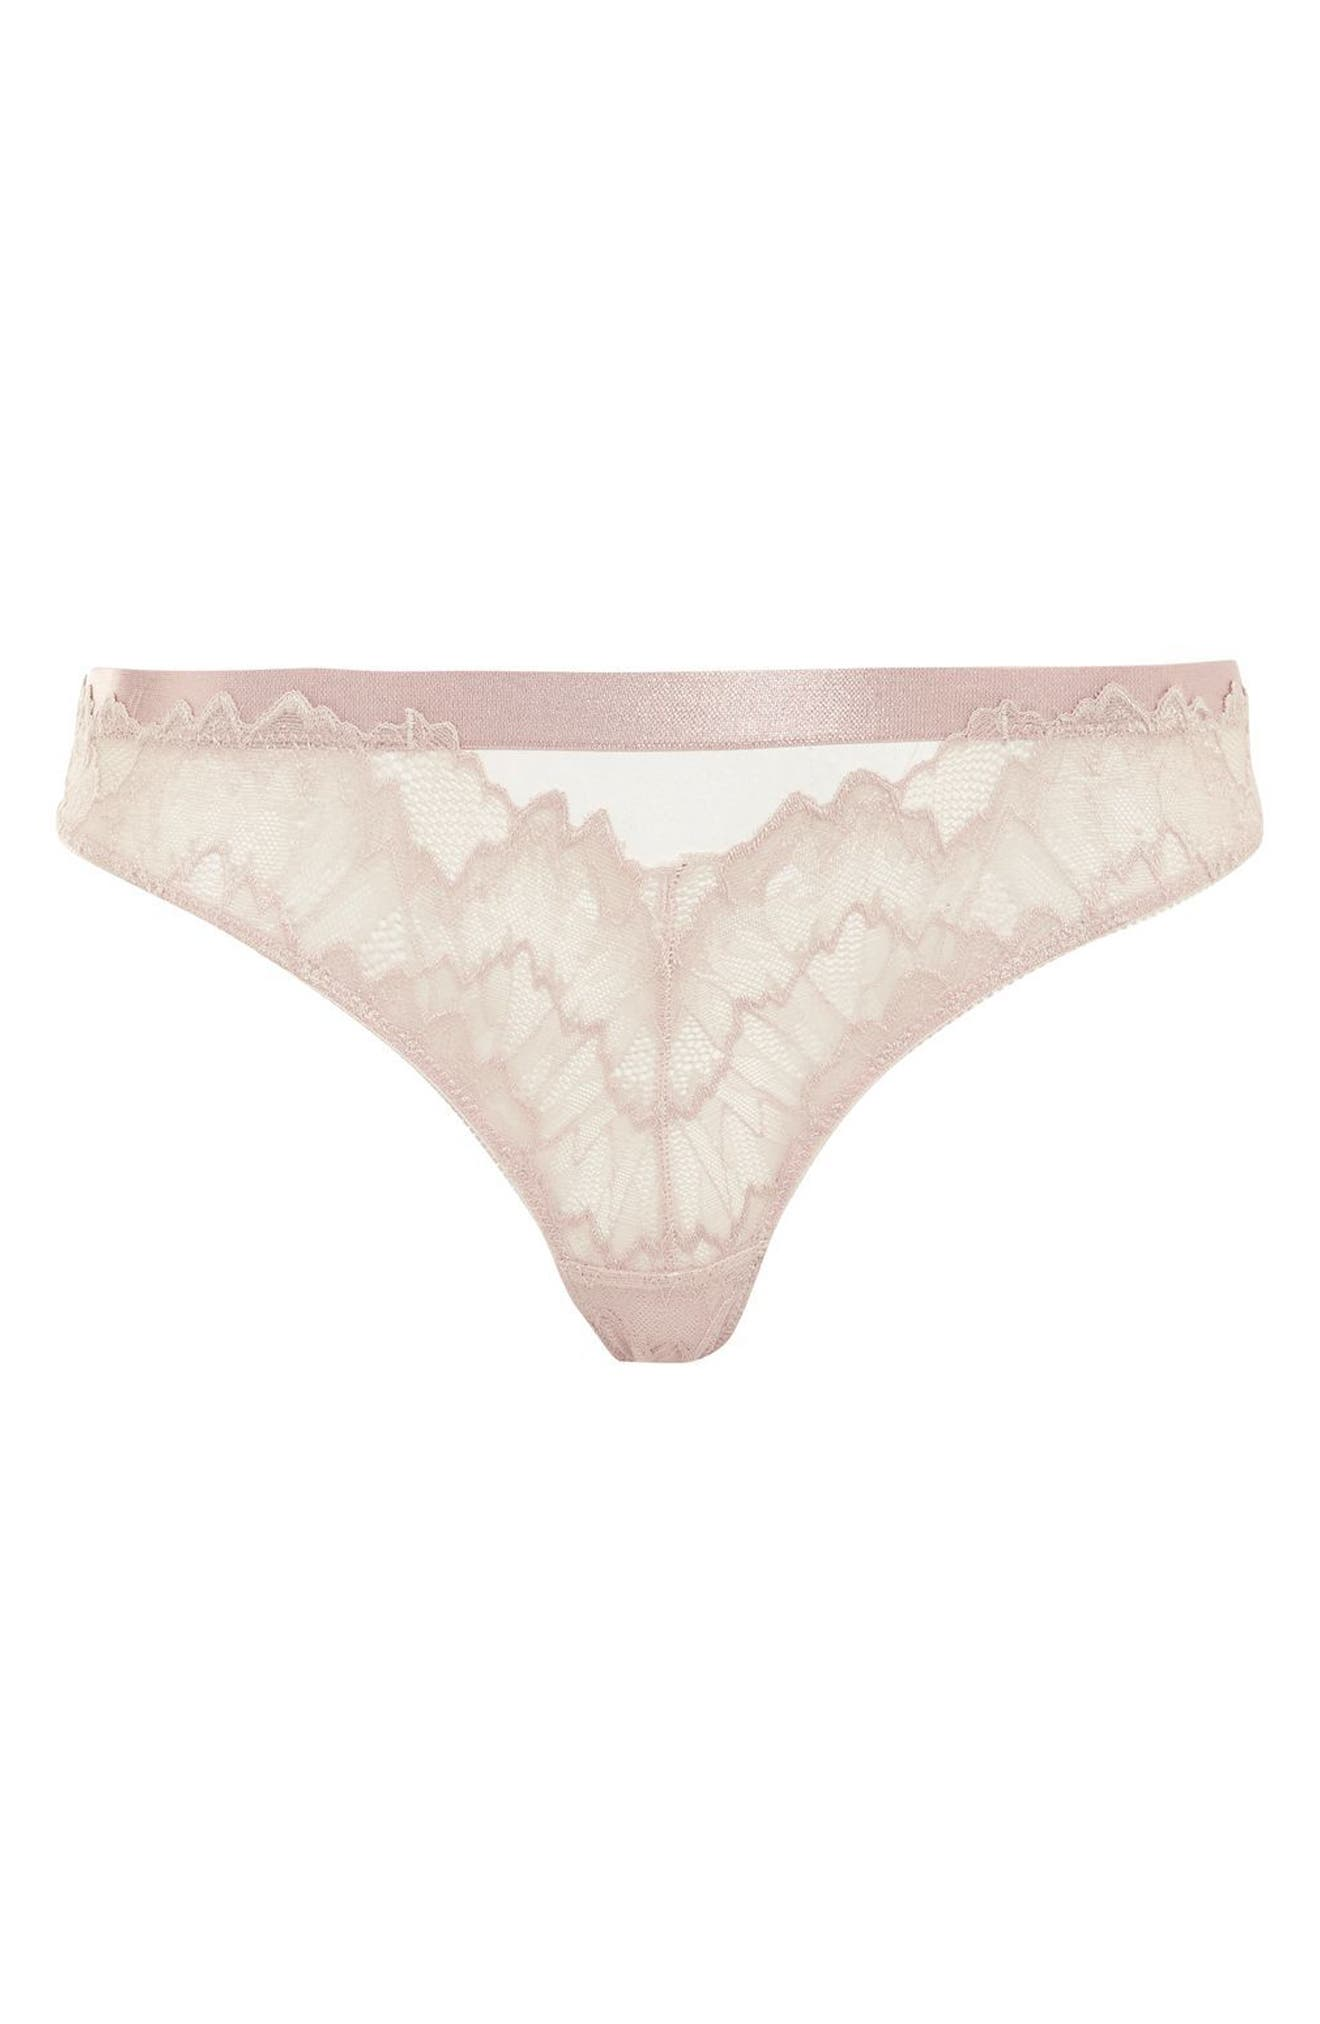 Verena Lace Thong,                             Alternate thumbnail 3, color,                             Cream